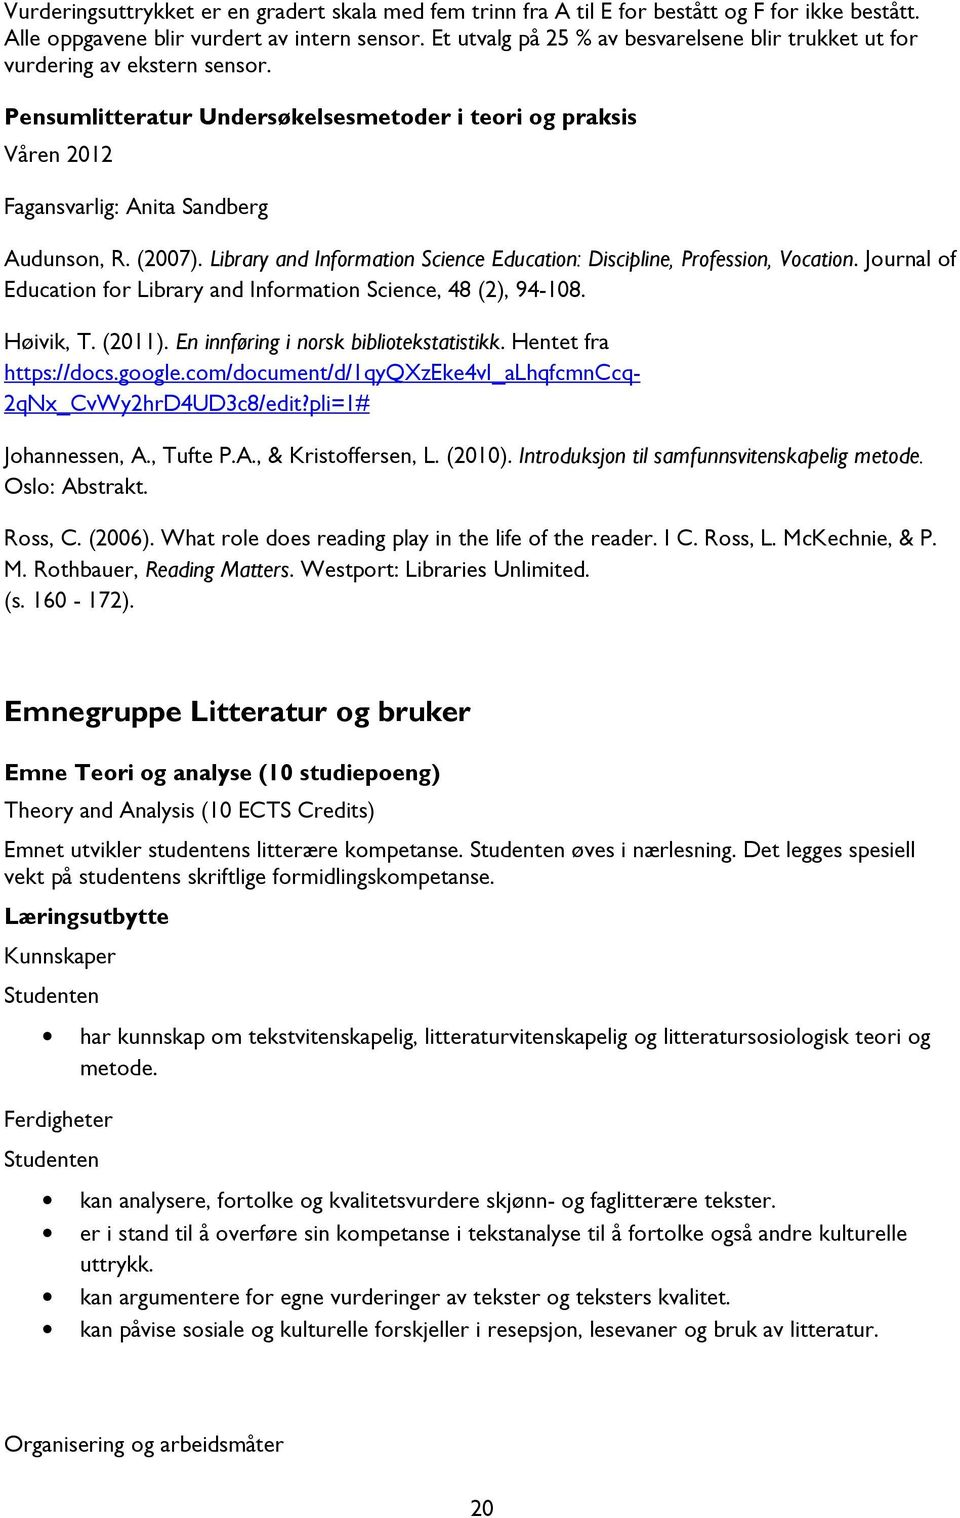 Library and Information Science Education: Discipline, Profession, Vocation. Journal of Education for Library and Information Science, 48 (2), 94-108. Høivik, T. (2011).